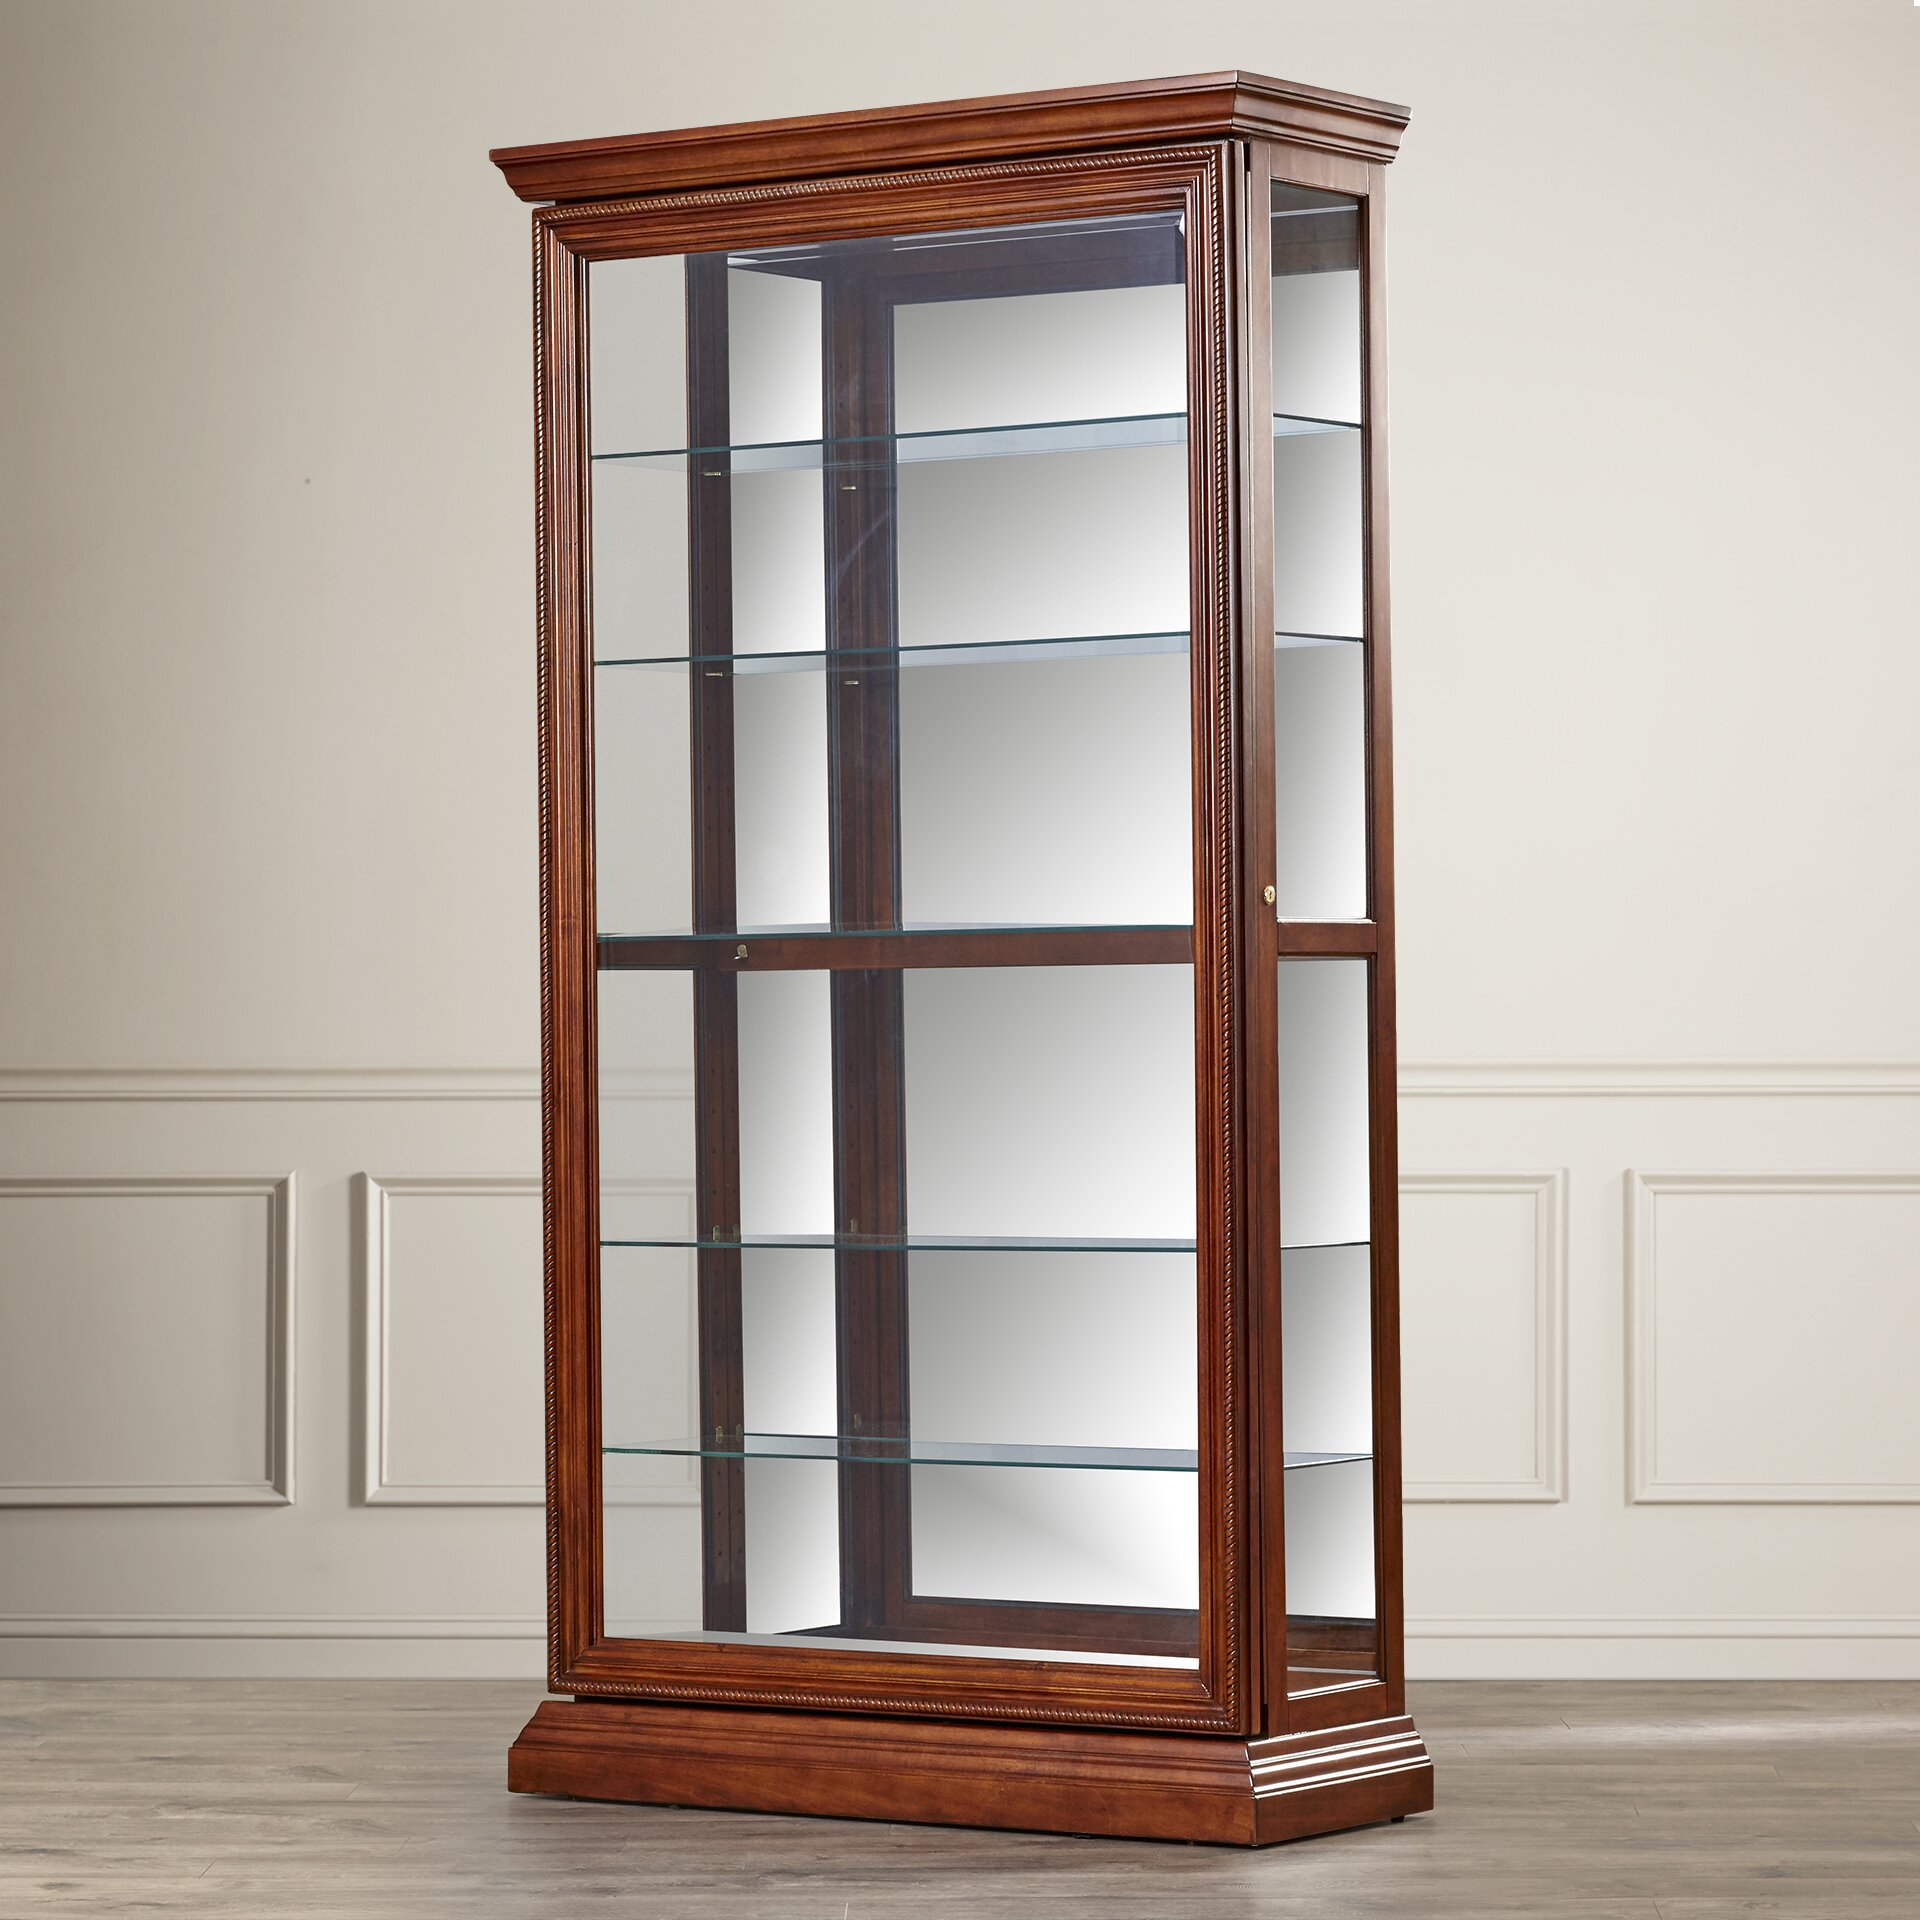 Clearance Cabinets: Darby Home Co Purvoche Curio Cabinet & Reviews